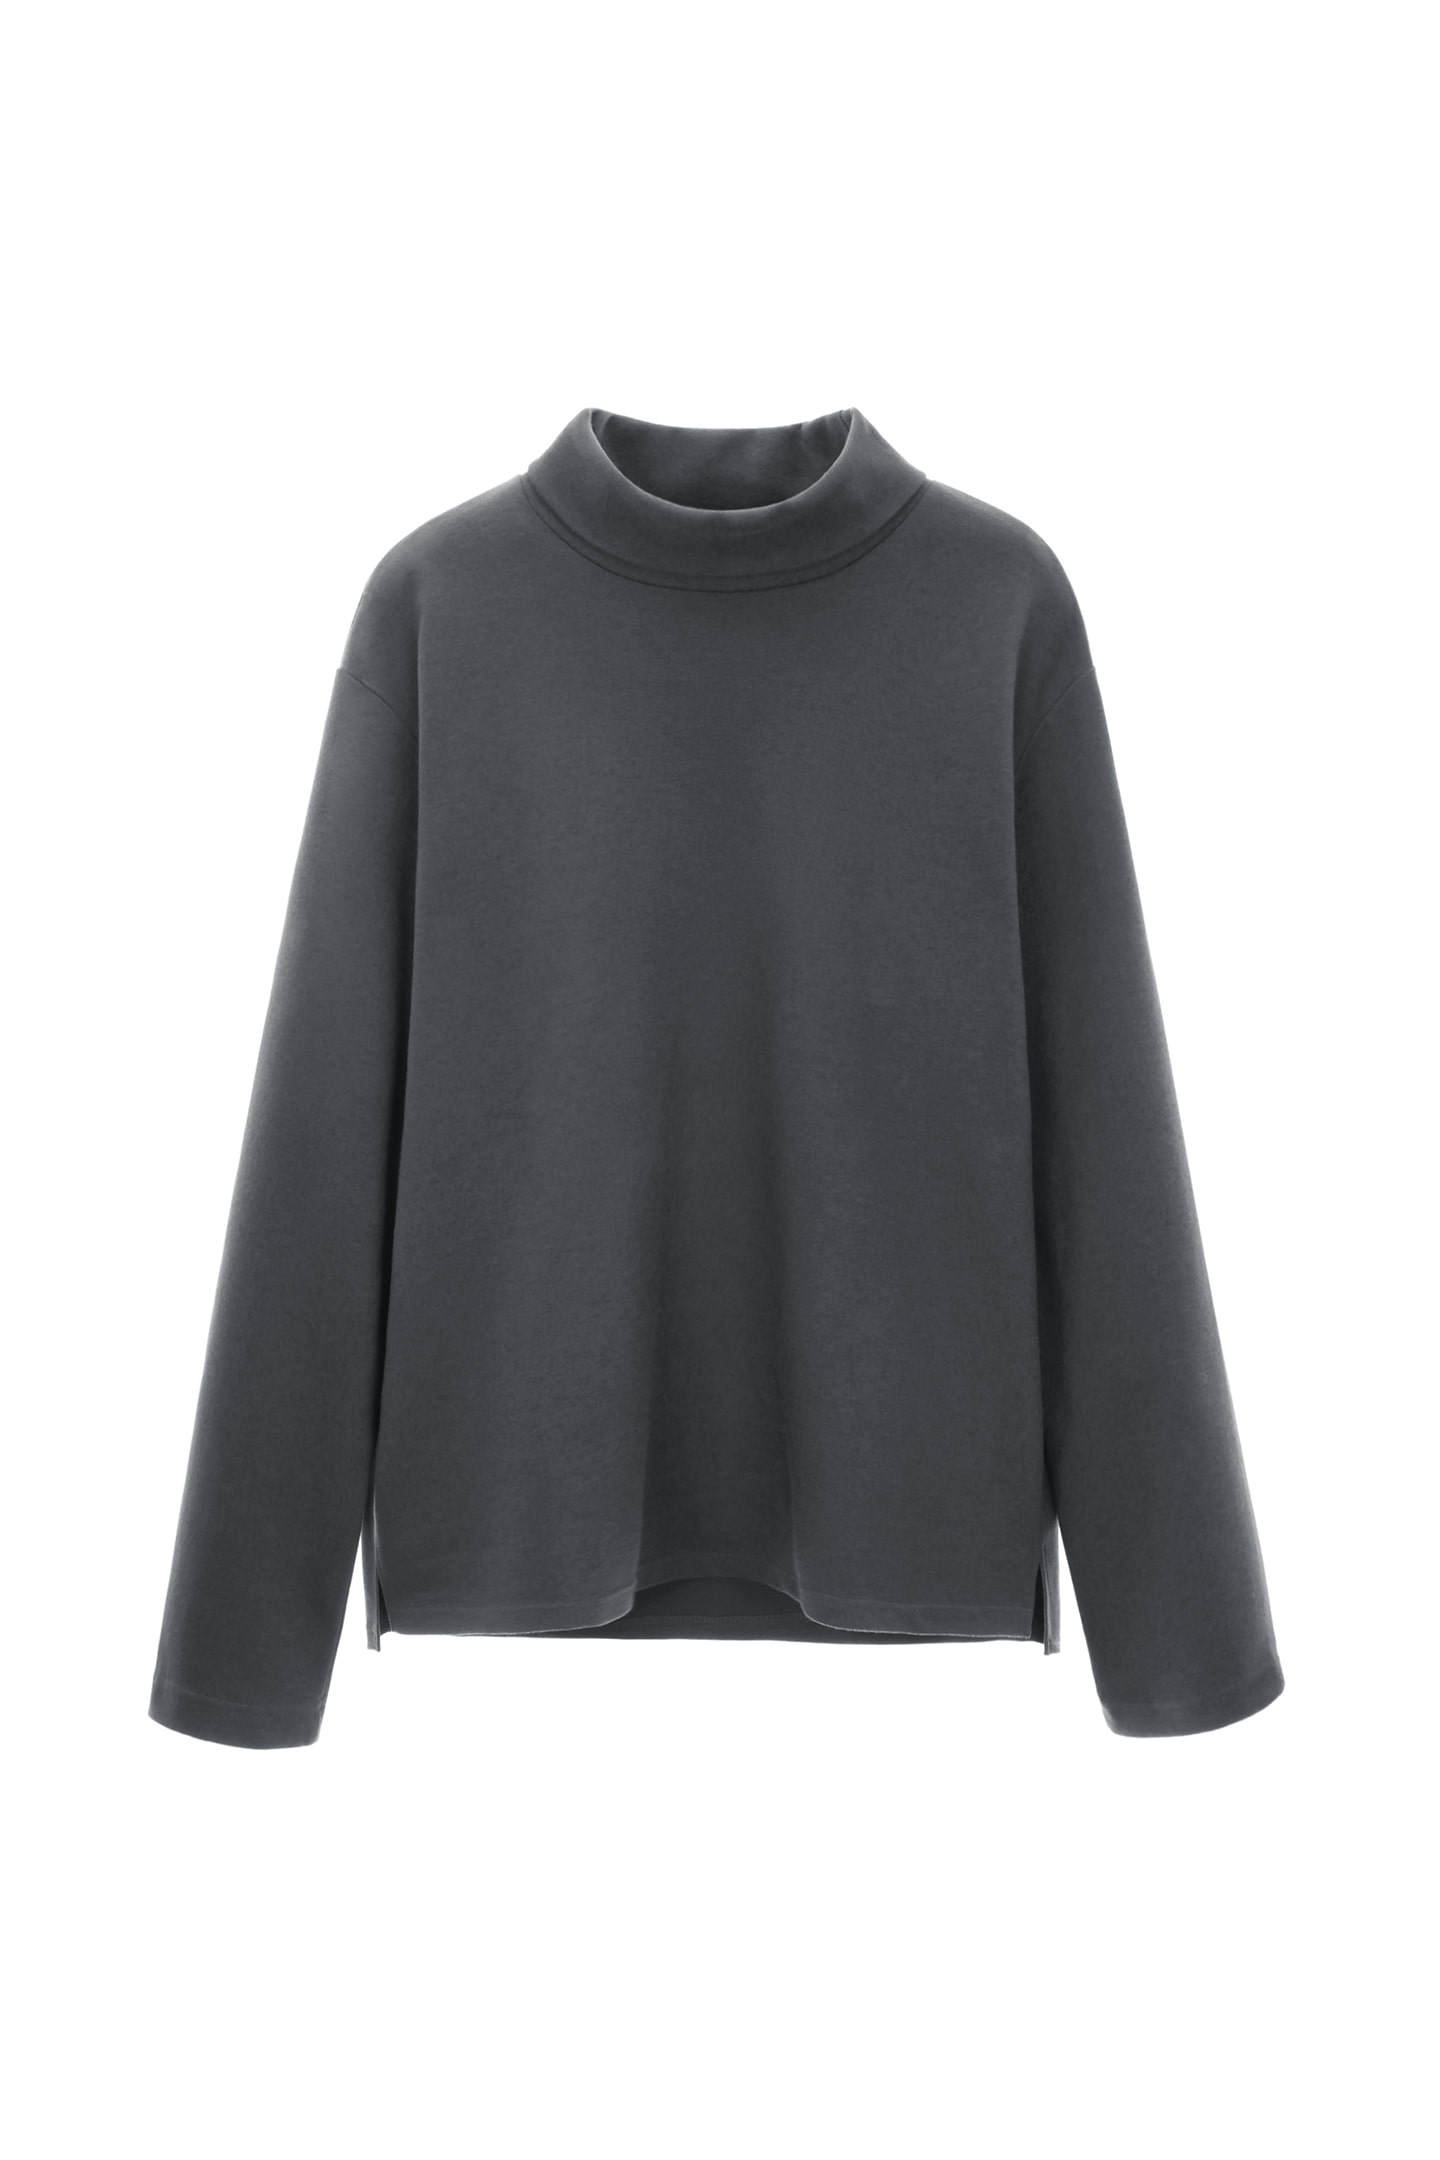 Turtleneck Men [Charcoal Gray]